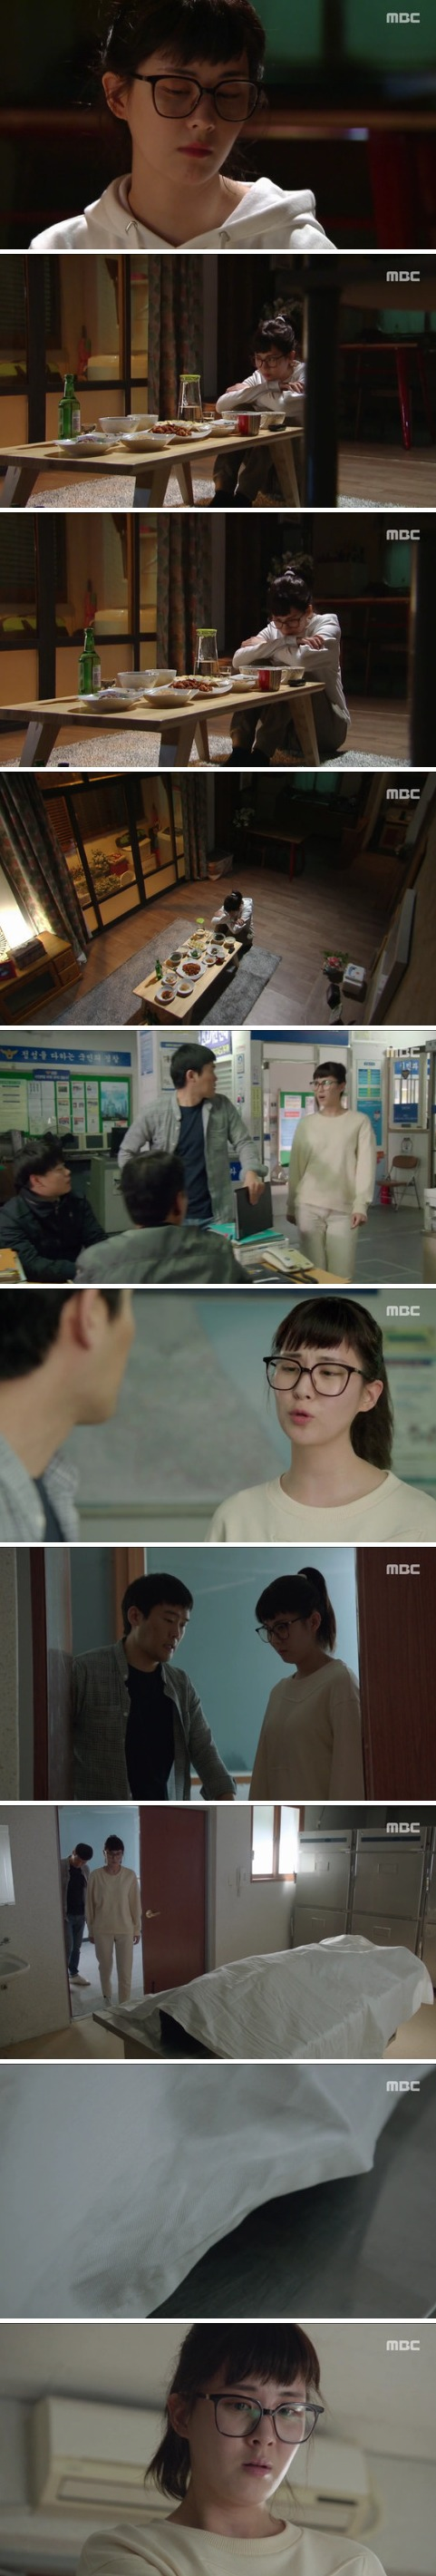 [Spoiler] Added episodes 9 and 10 captures for the Korean drama 'Bad Thief, Good Thief'